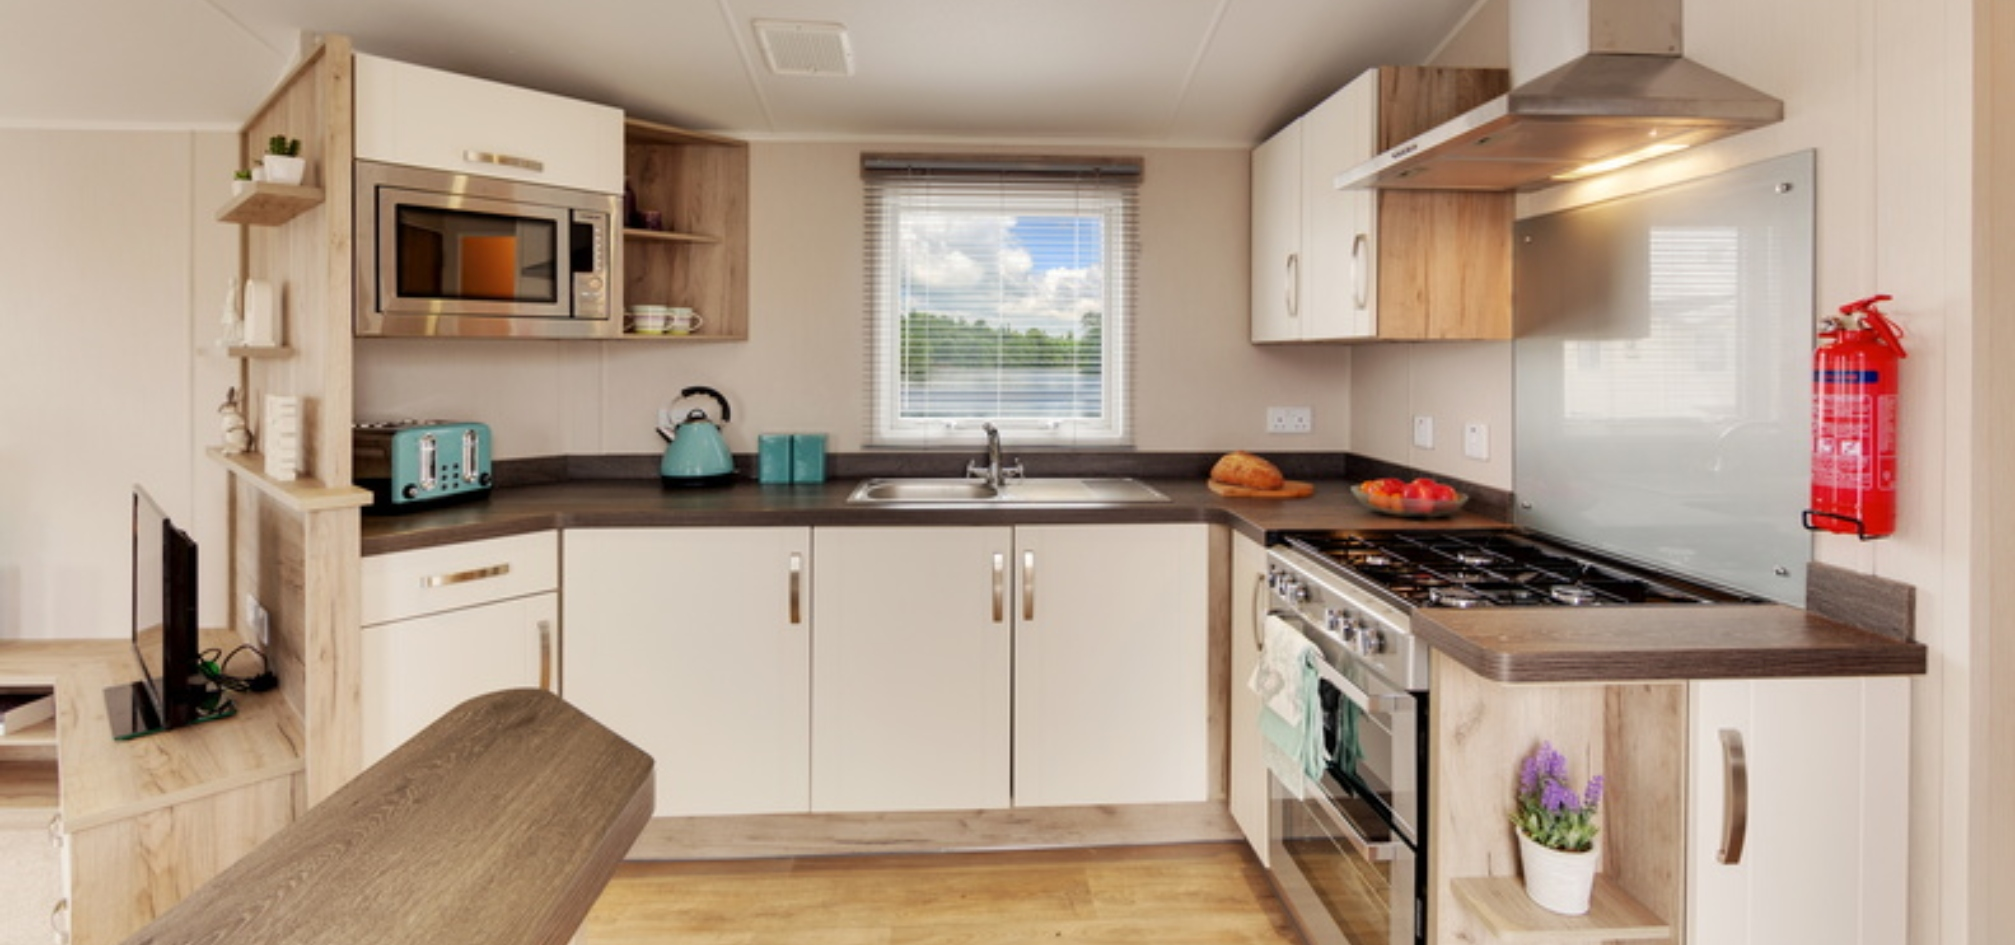 holiday home kitchen in an open plan setting with the living room